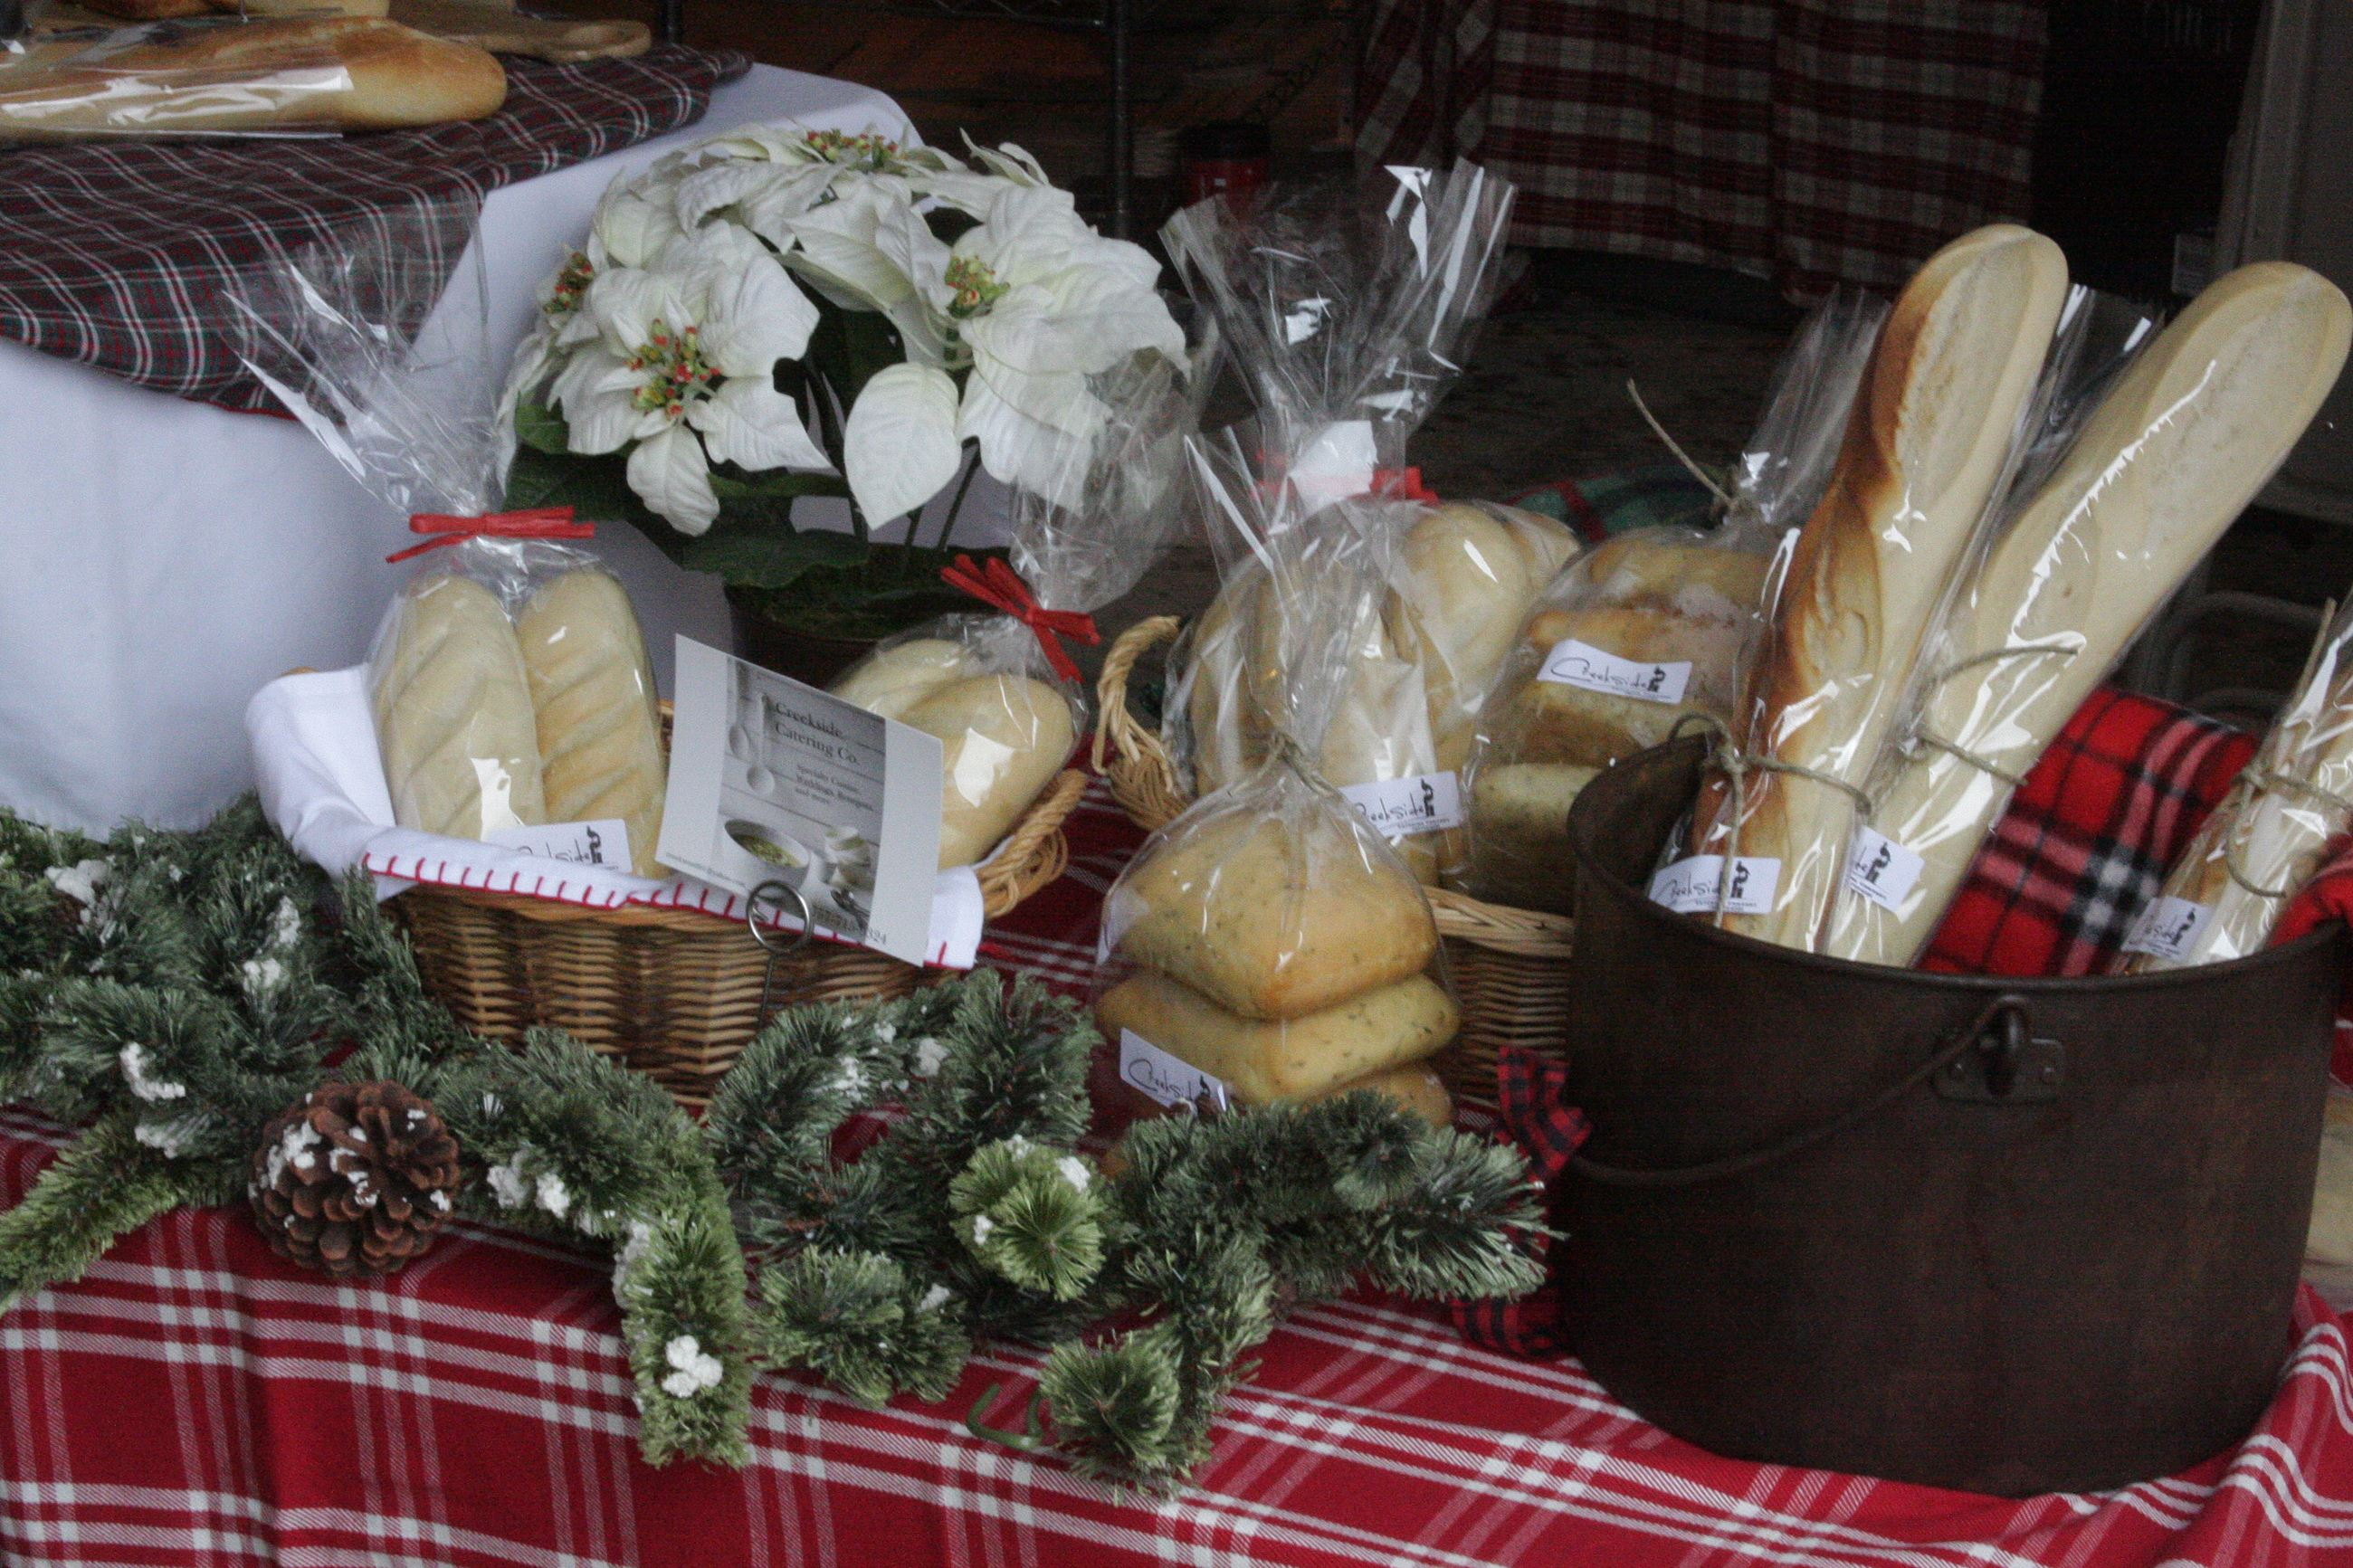 Creekside Catering Holiday Market